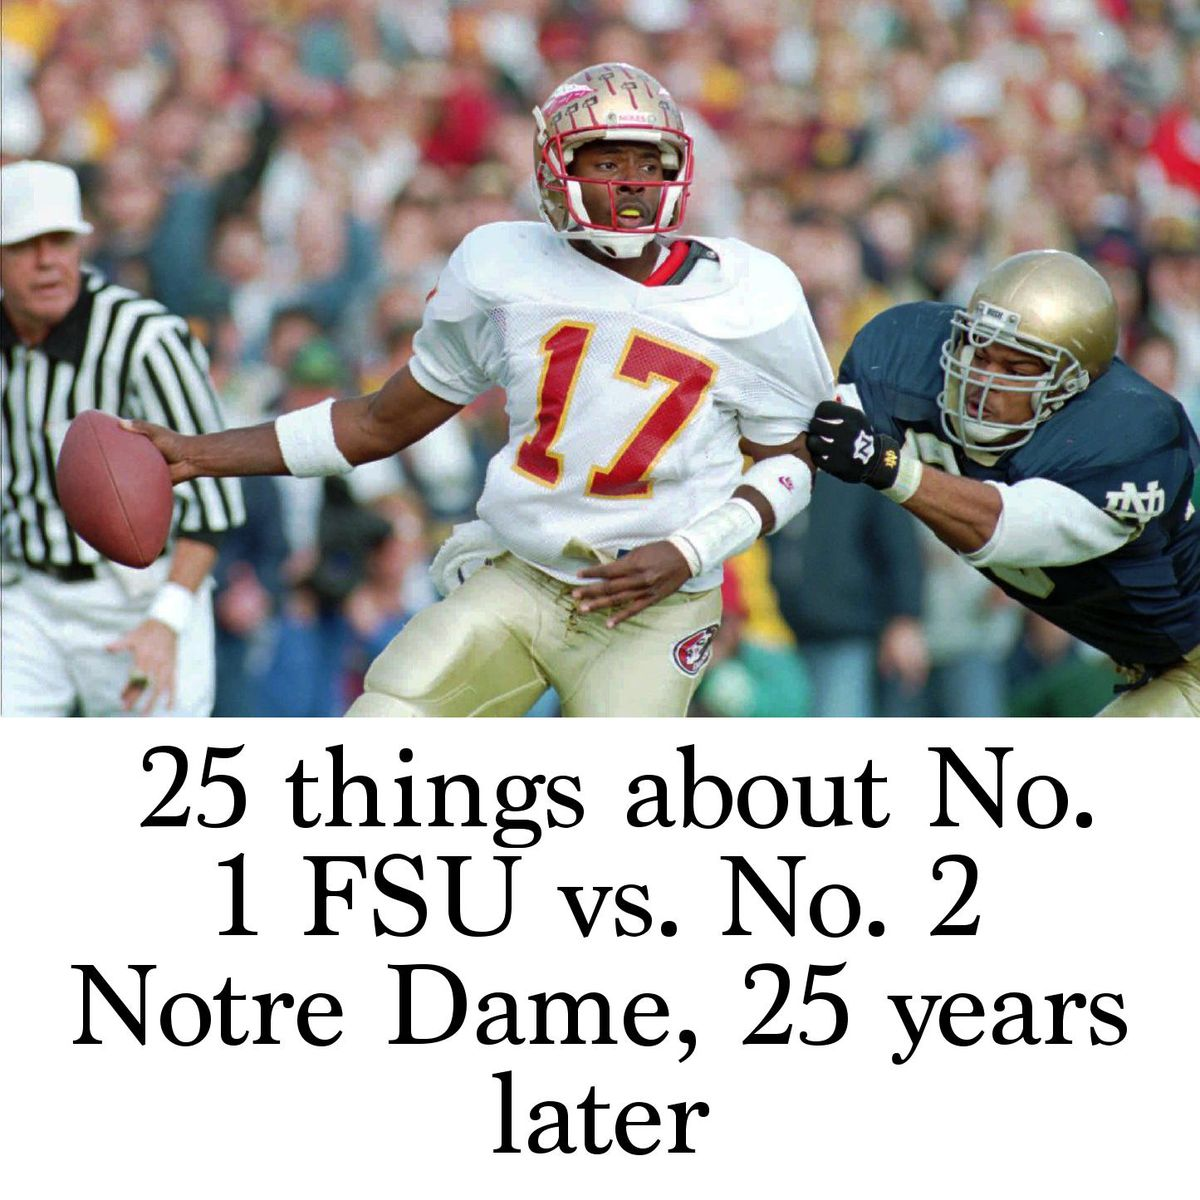 25 Things About No 1 Fsu Vs No 2 Notre Dame 25 Years Later